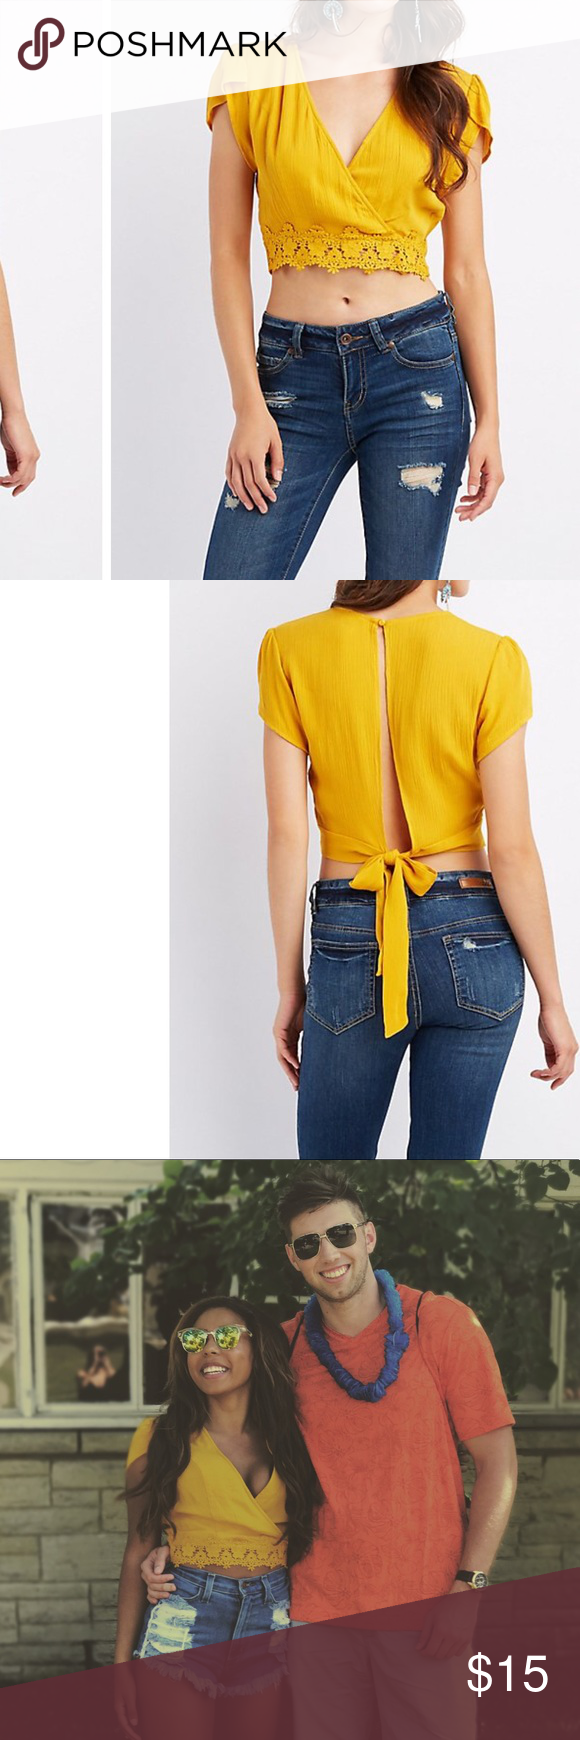 Mustard the back top Charlotte Russe This shirt is extra small but fits more like a small. It can be adjusted and tied tighter or more loose based on you preference. Such a fun vibrant color perfect to add to any fall wardrobe! Charlotte Russe Tops